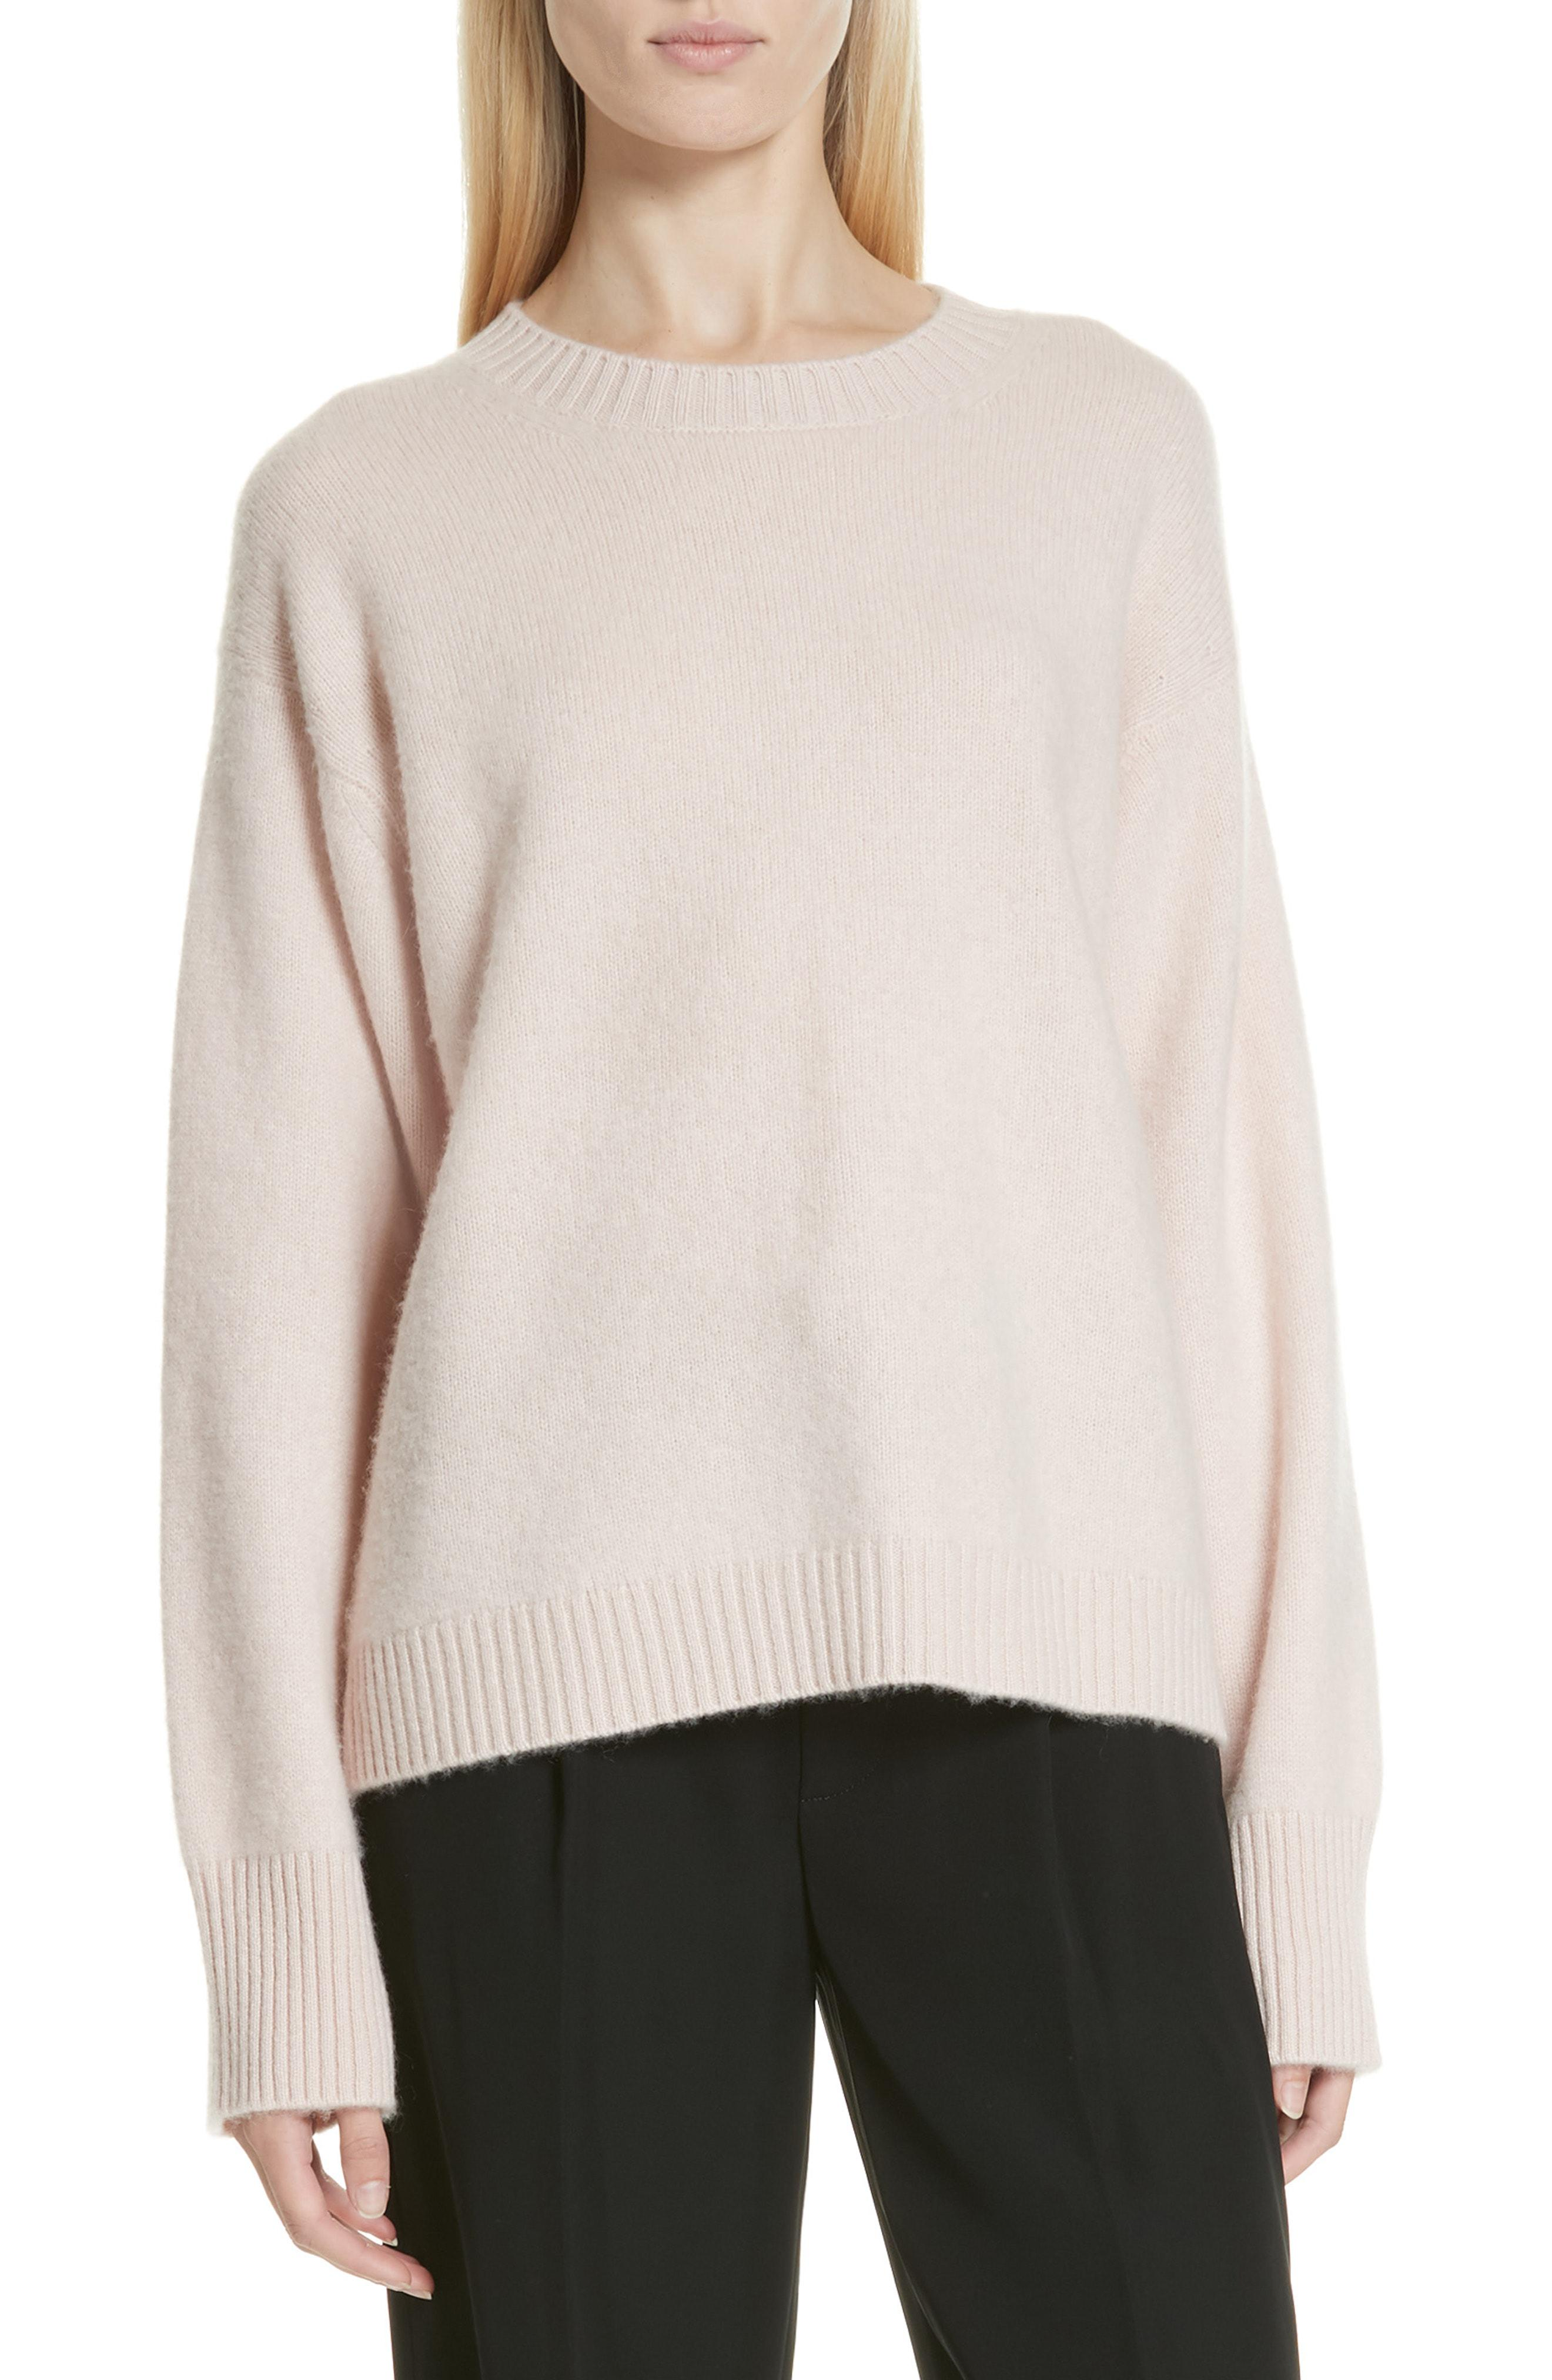 9f5d2b2e8ef Lyst - Vince Boxy Cashmere Sweater in Pink - Save 40%